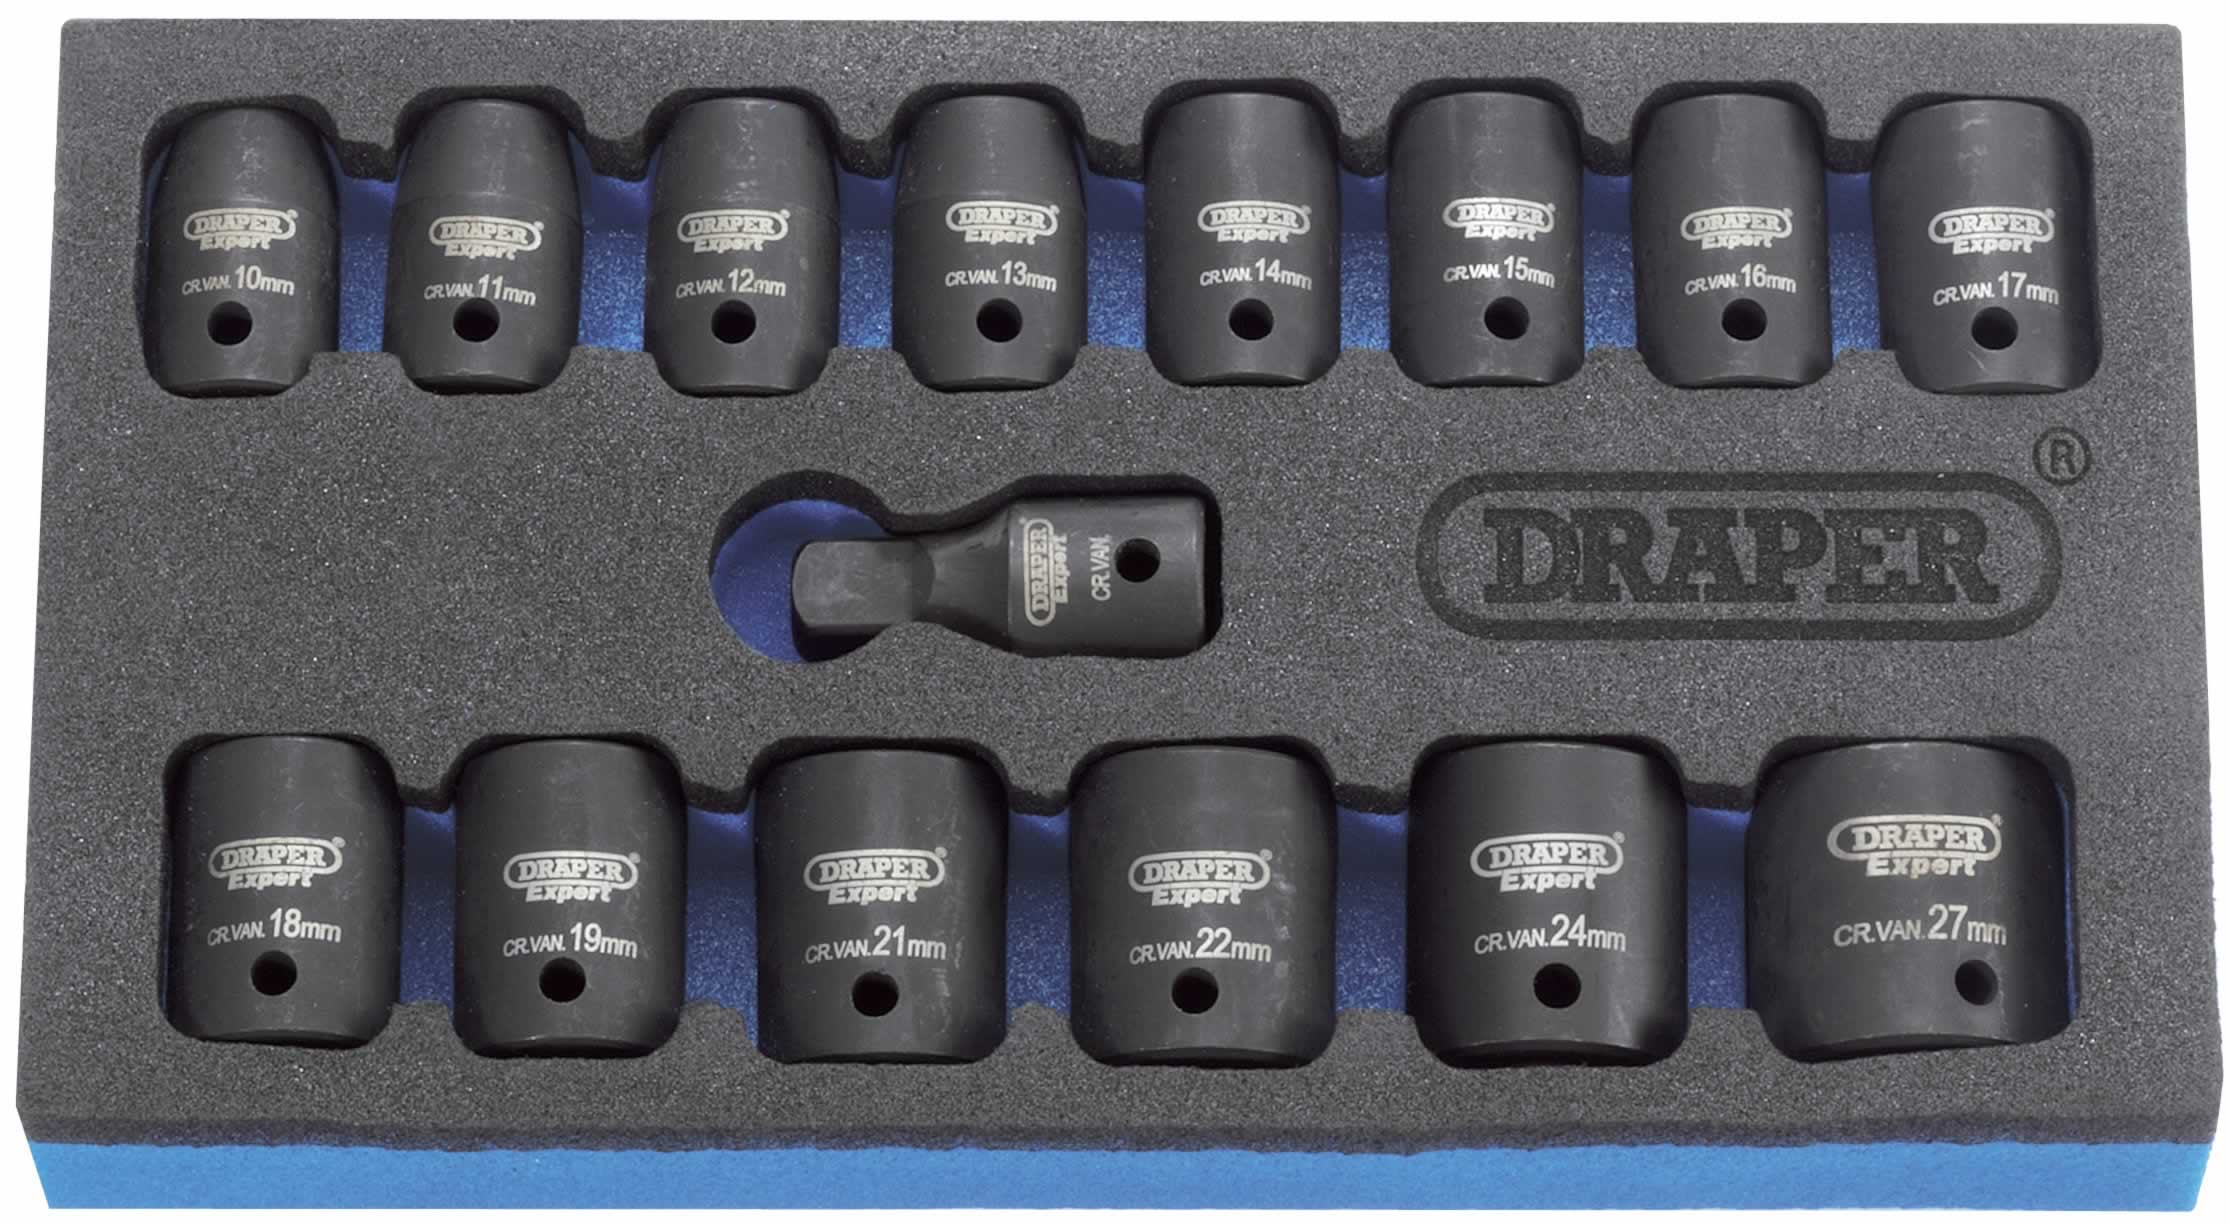 "EXPERT 15 PIECE 1/2"" Sq. Dr. SET OF DRAPER EXPERT HI-TORQ METRIC IMPACT SOCKETS IN EVA FOAM INSERT TRAY"